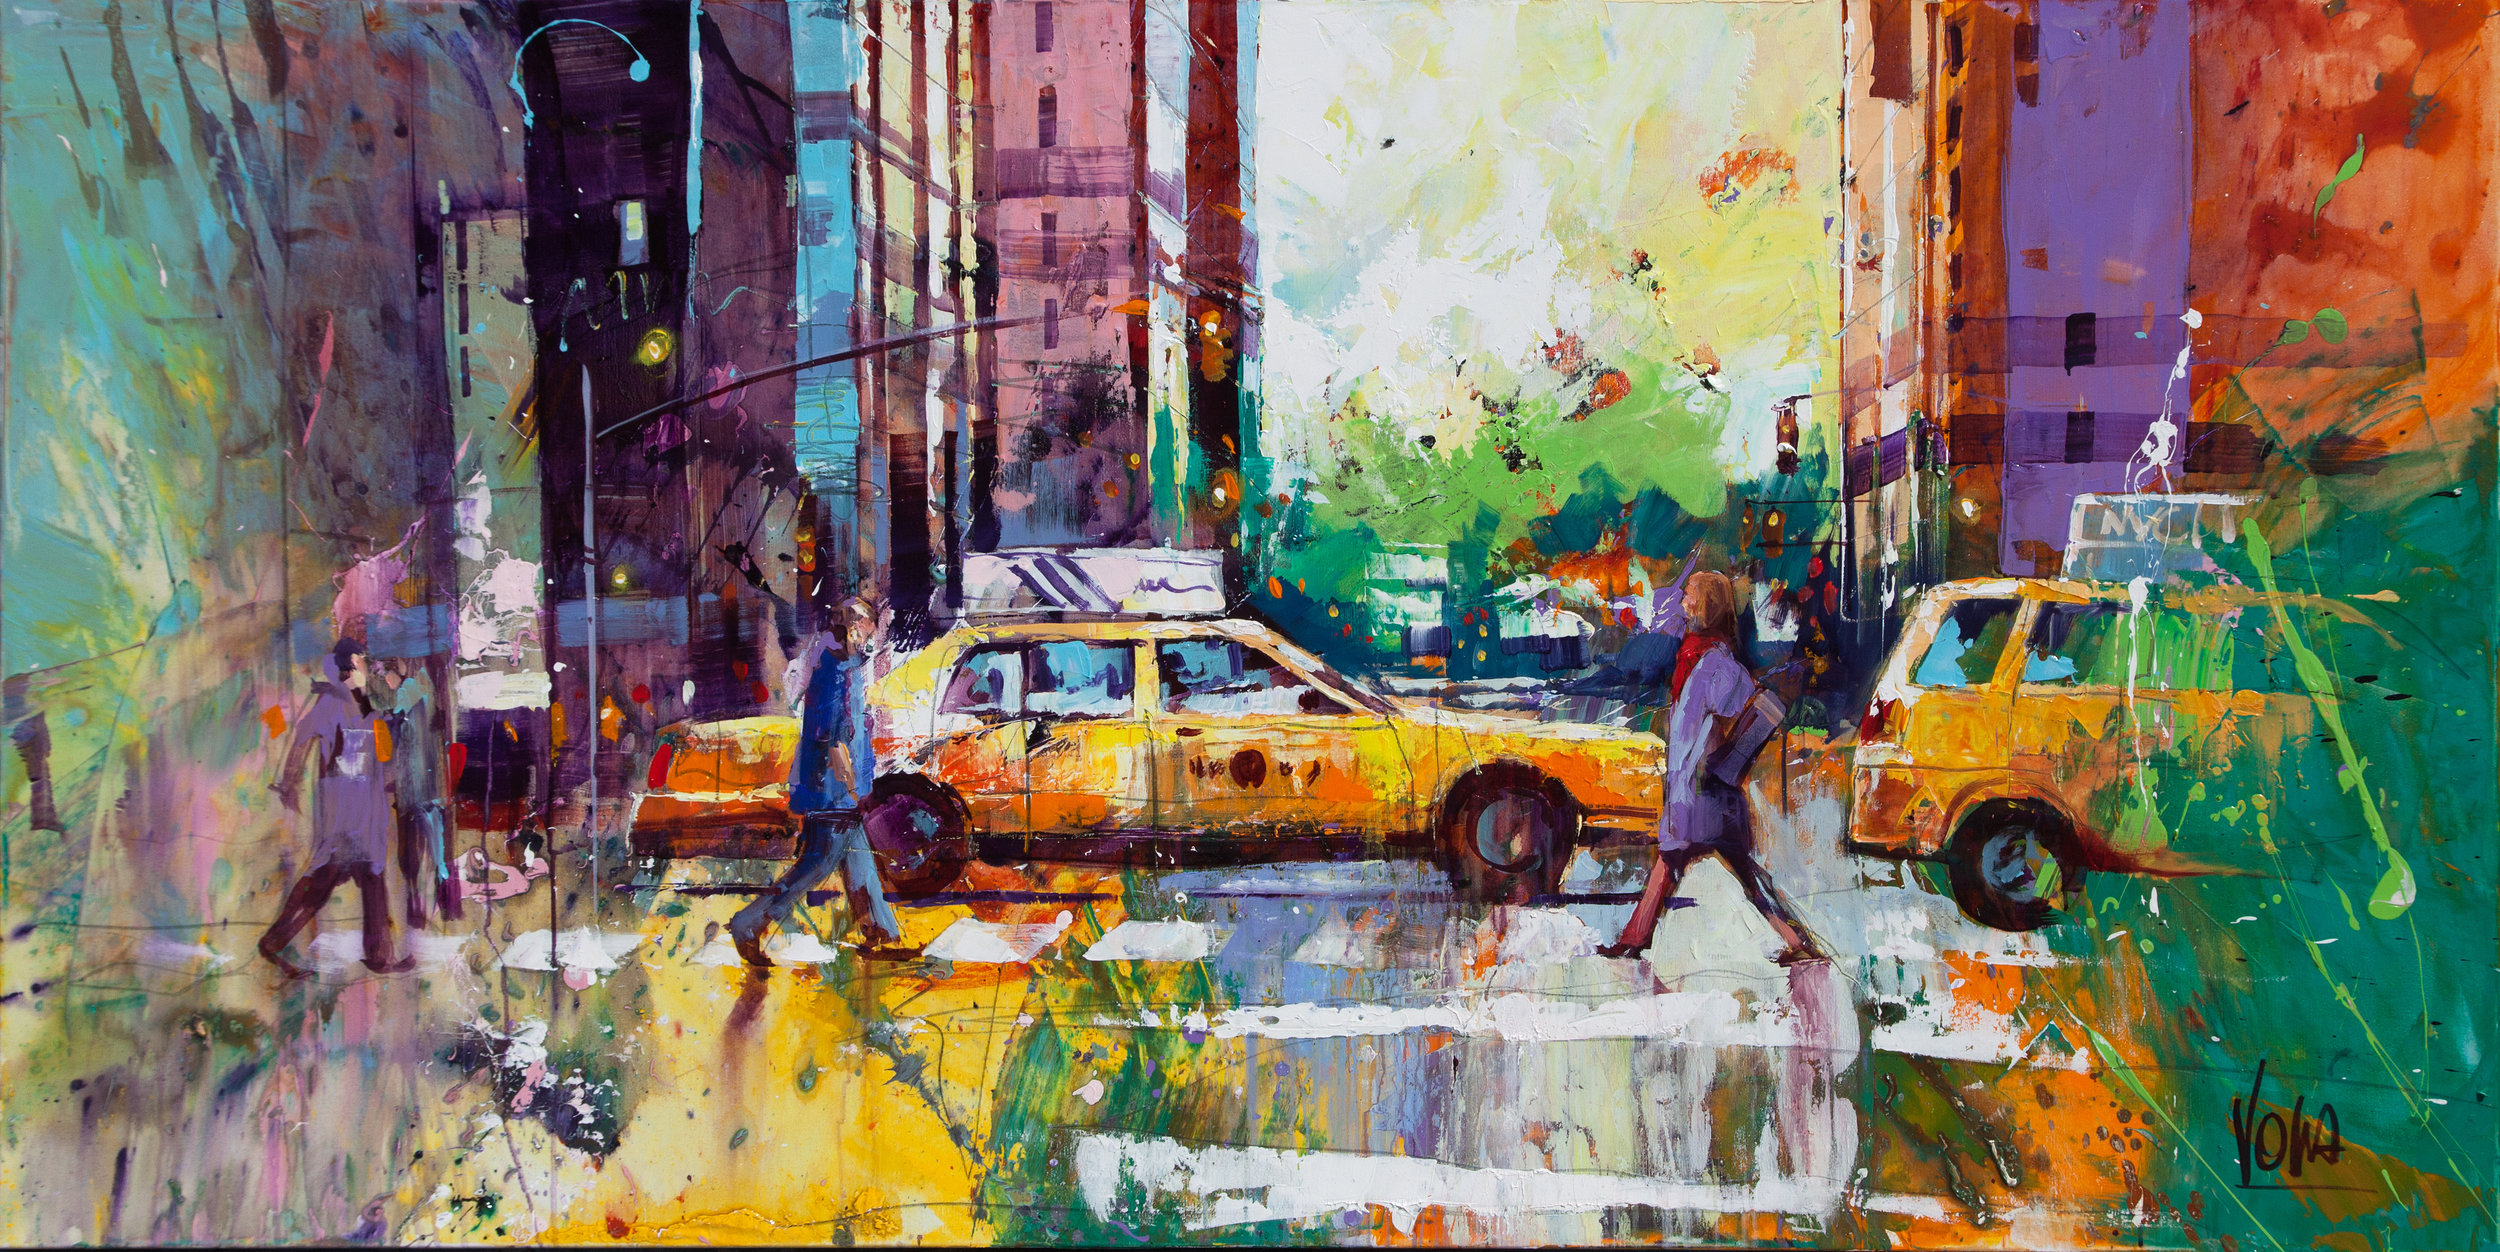 New York City, 100x200 cm/39,4x39,4 inch, Acrylic on Canvas